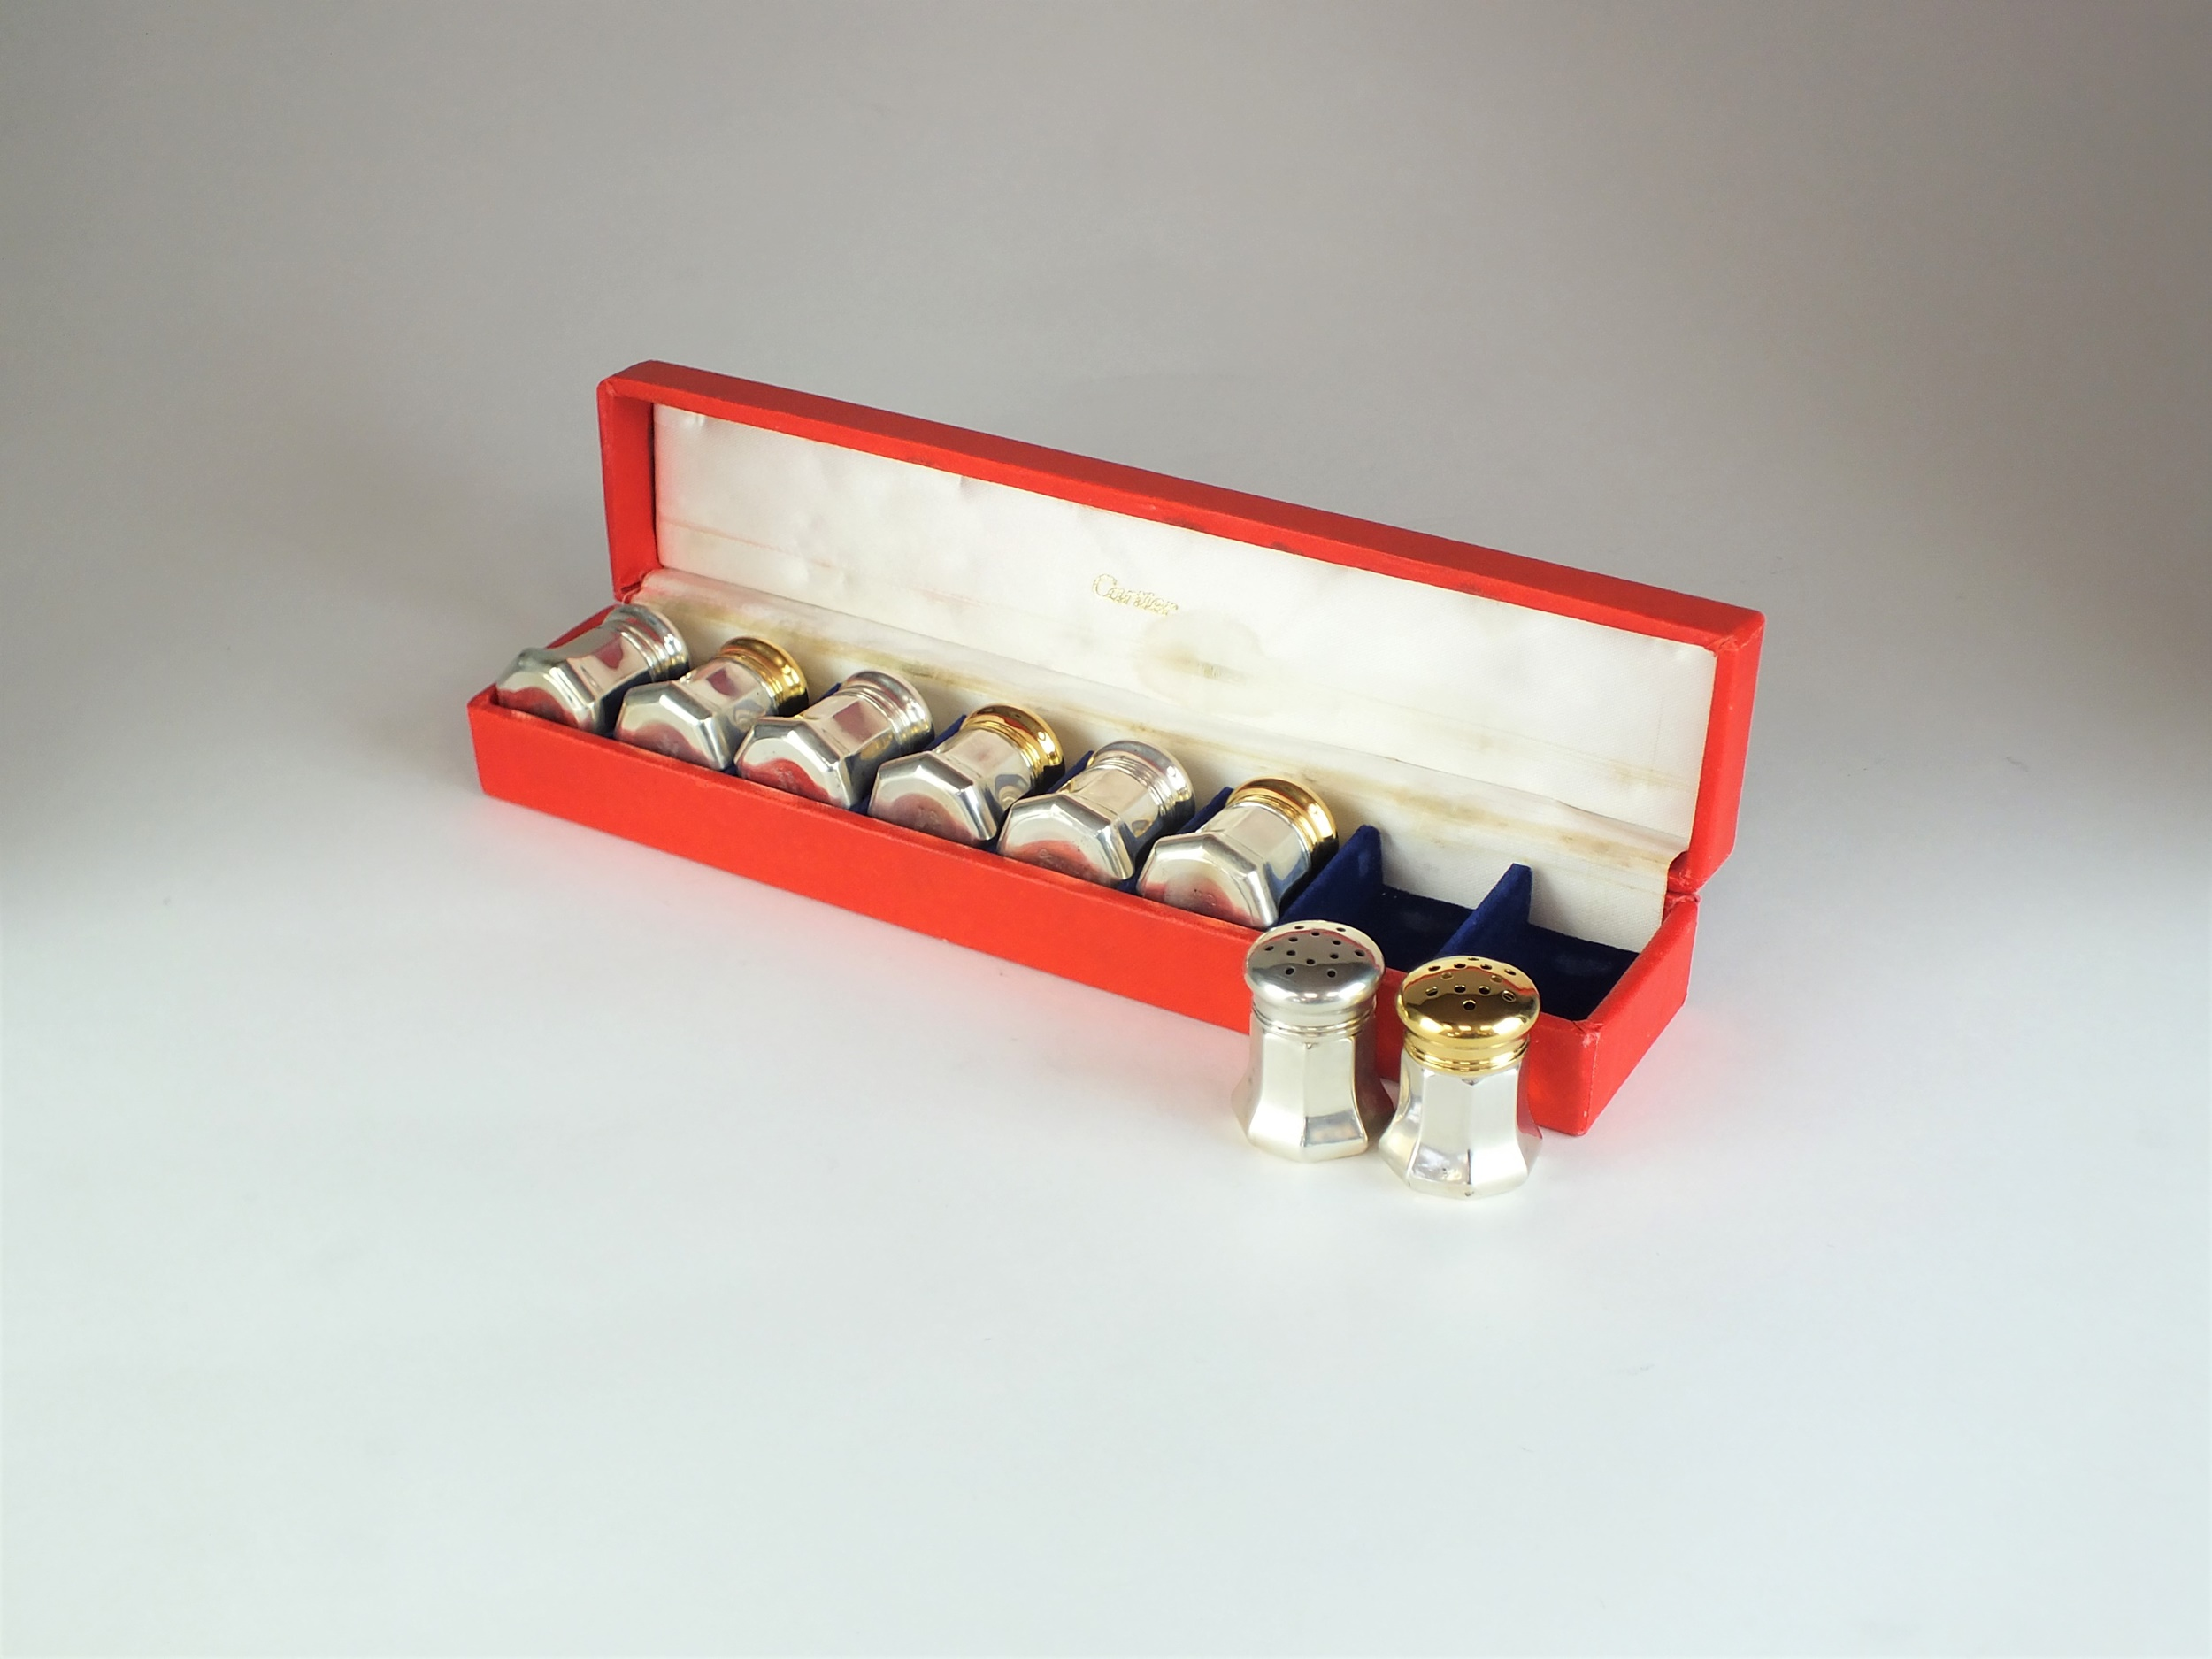 Cartier silver and gilt salt and pepper shakers